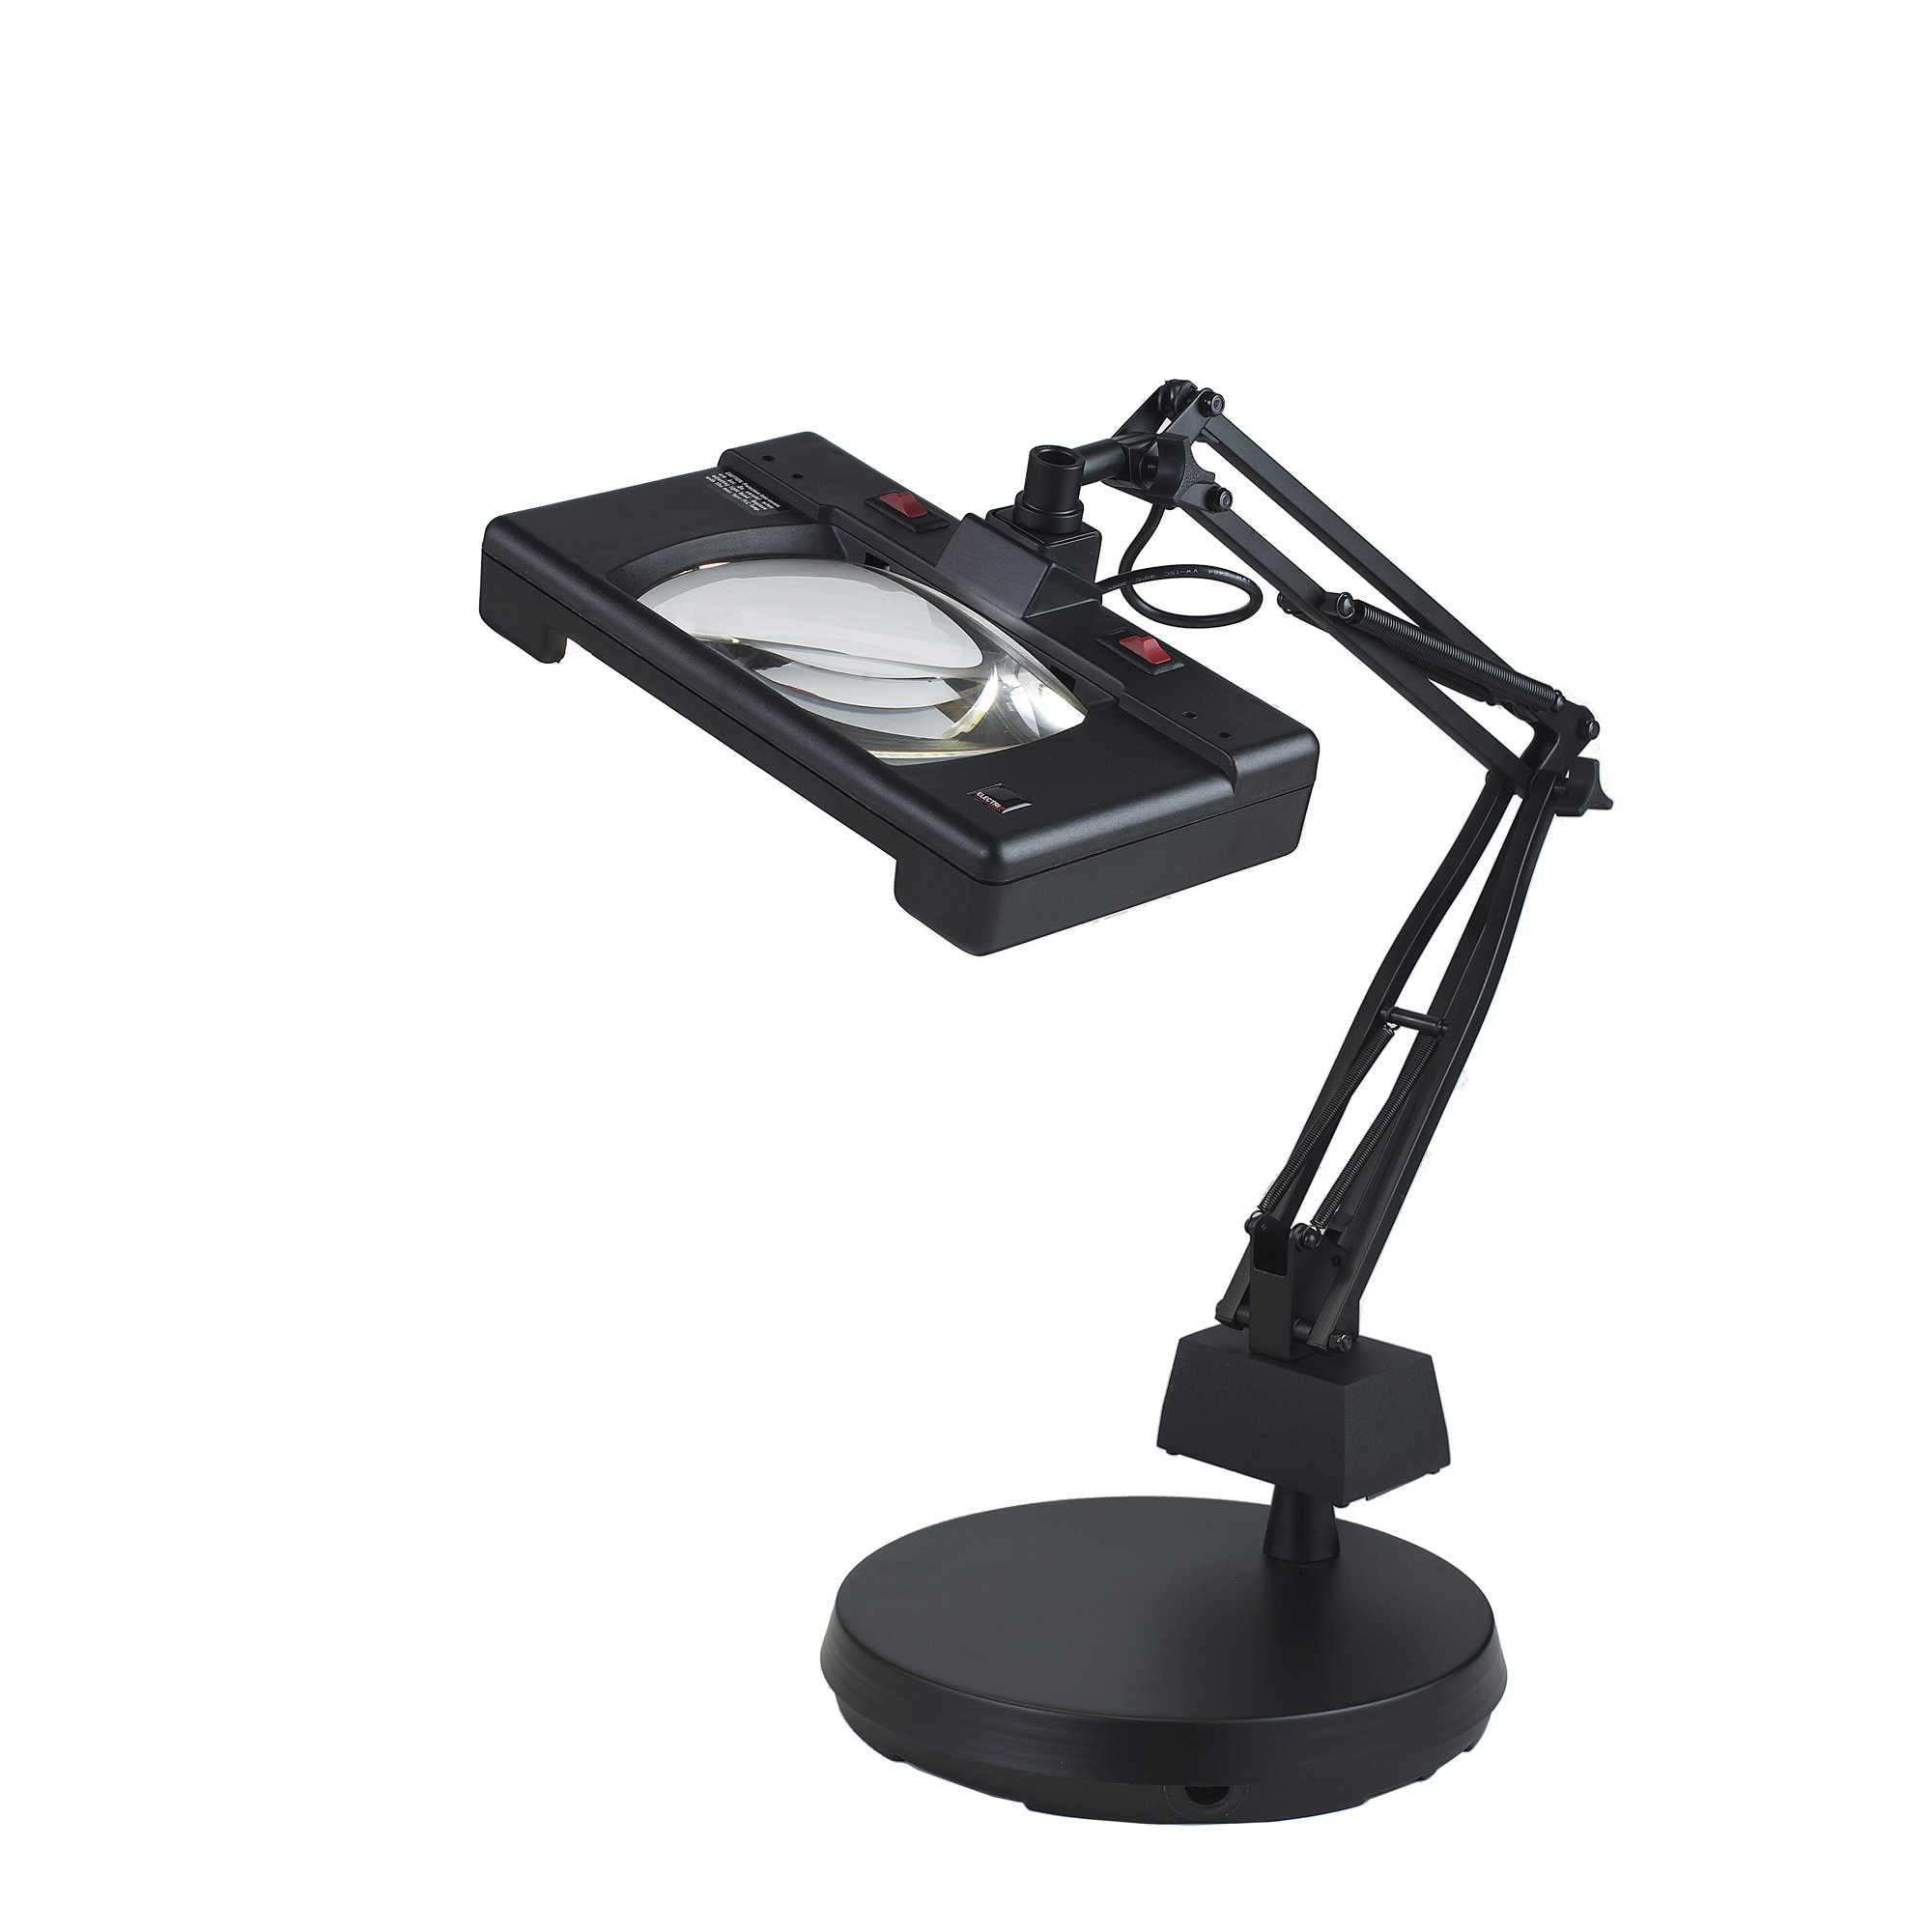 Electrix 7452 BLACK Wide View Magnifier Lamp, Fluorescent, 3-Diopter, Weighted Base Mounting, 30'' Reach, 26W, 1720 Raw Lumens